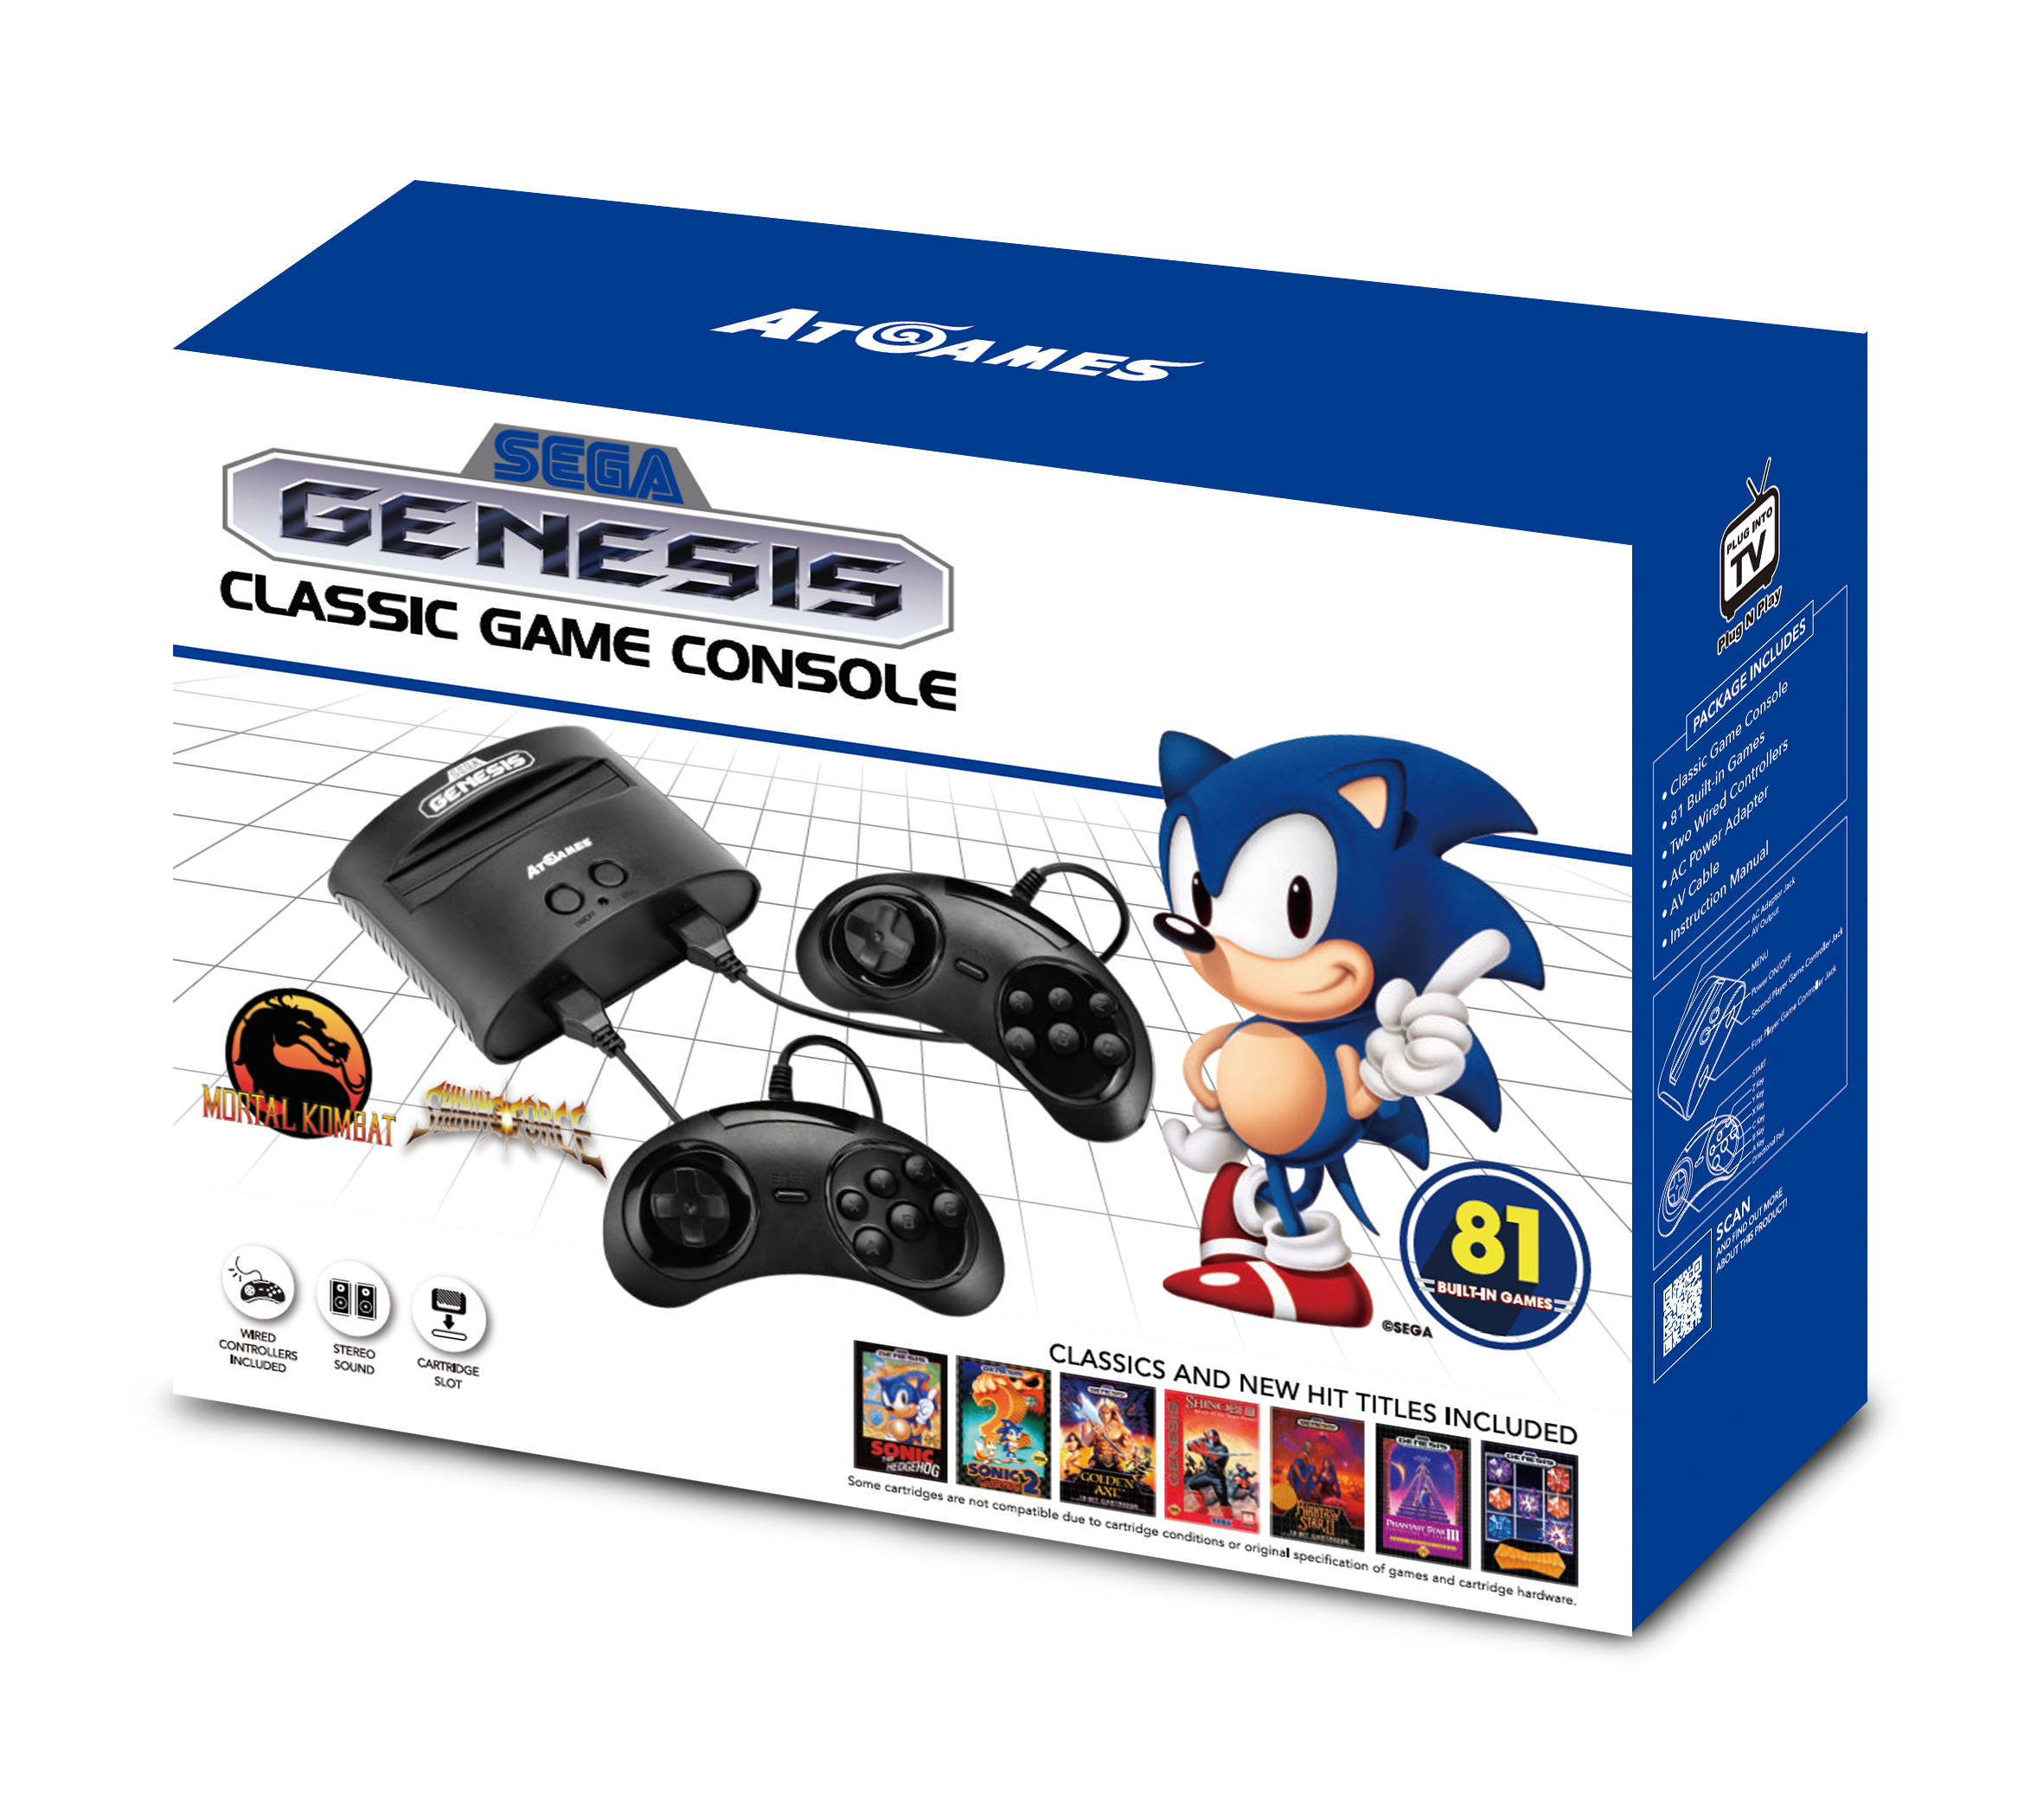 Sega genesis classic game console 2017 the official - Sega genesis classic game console games ...